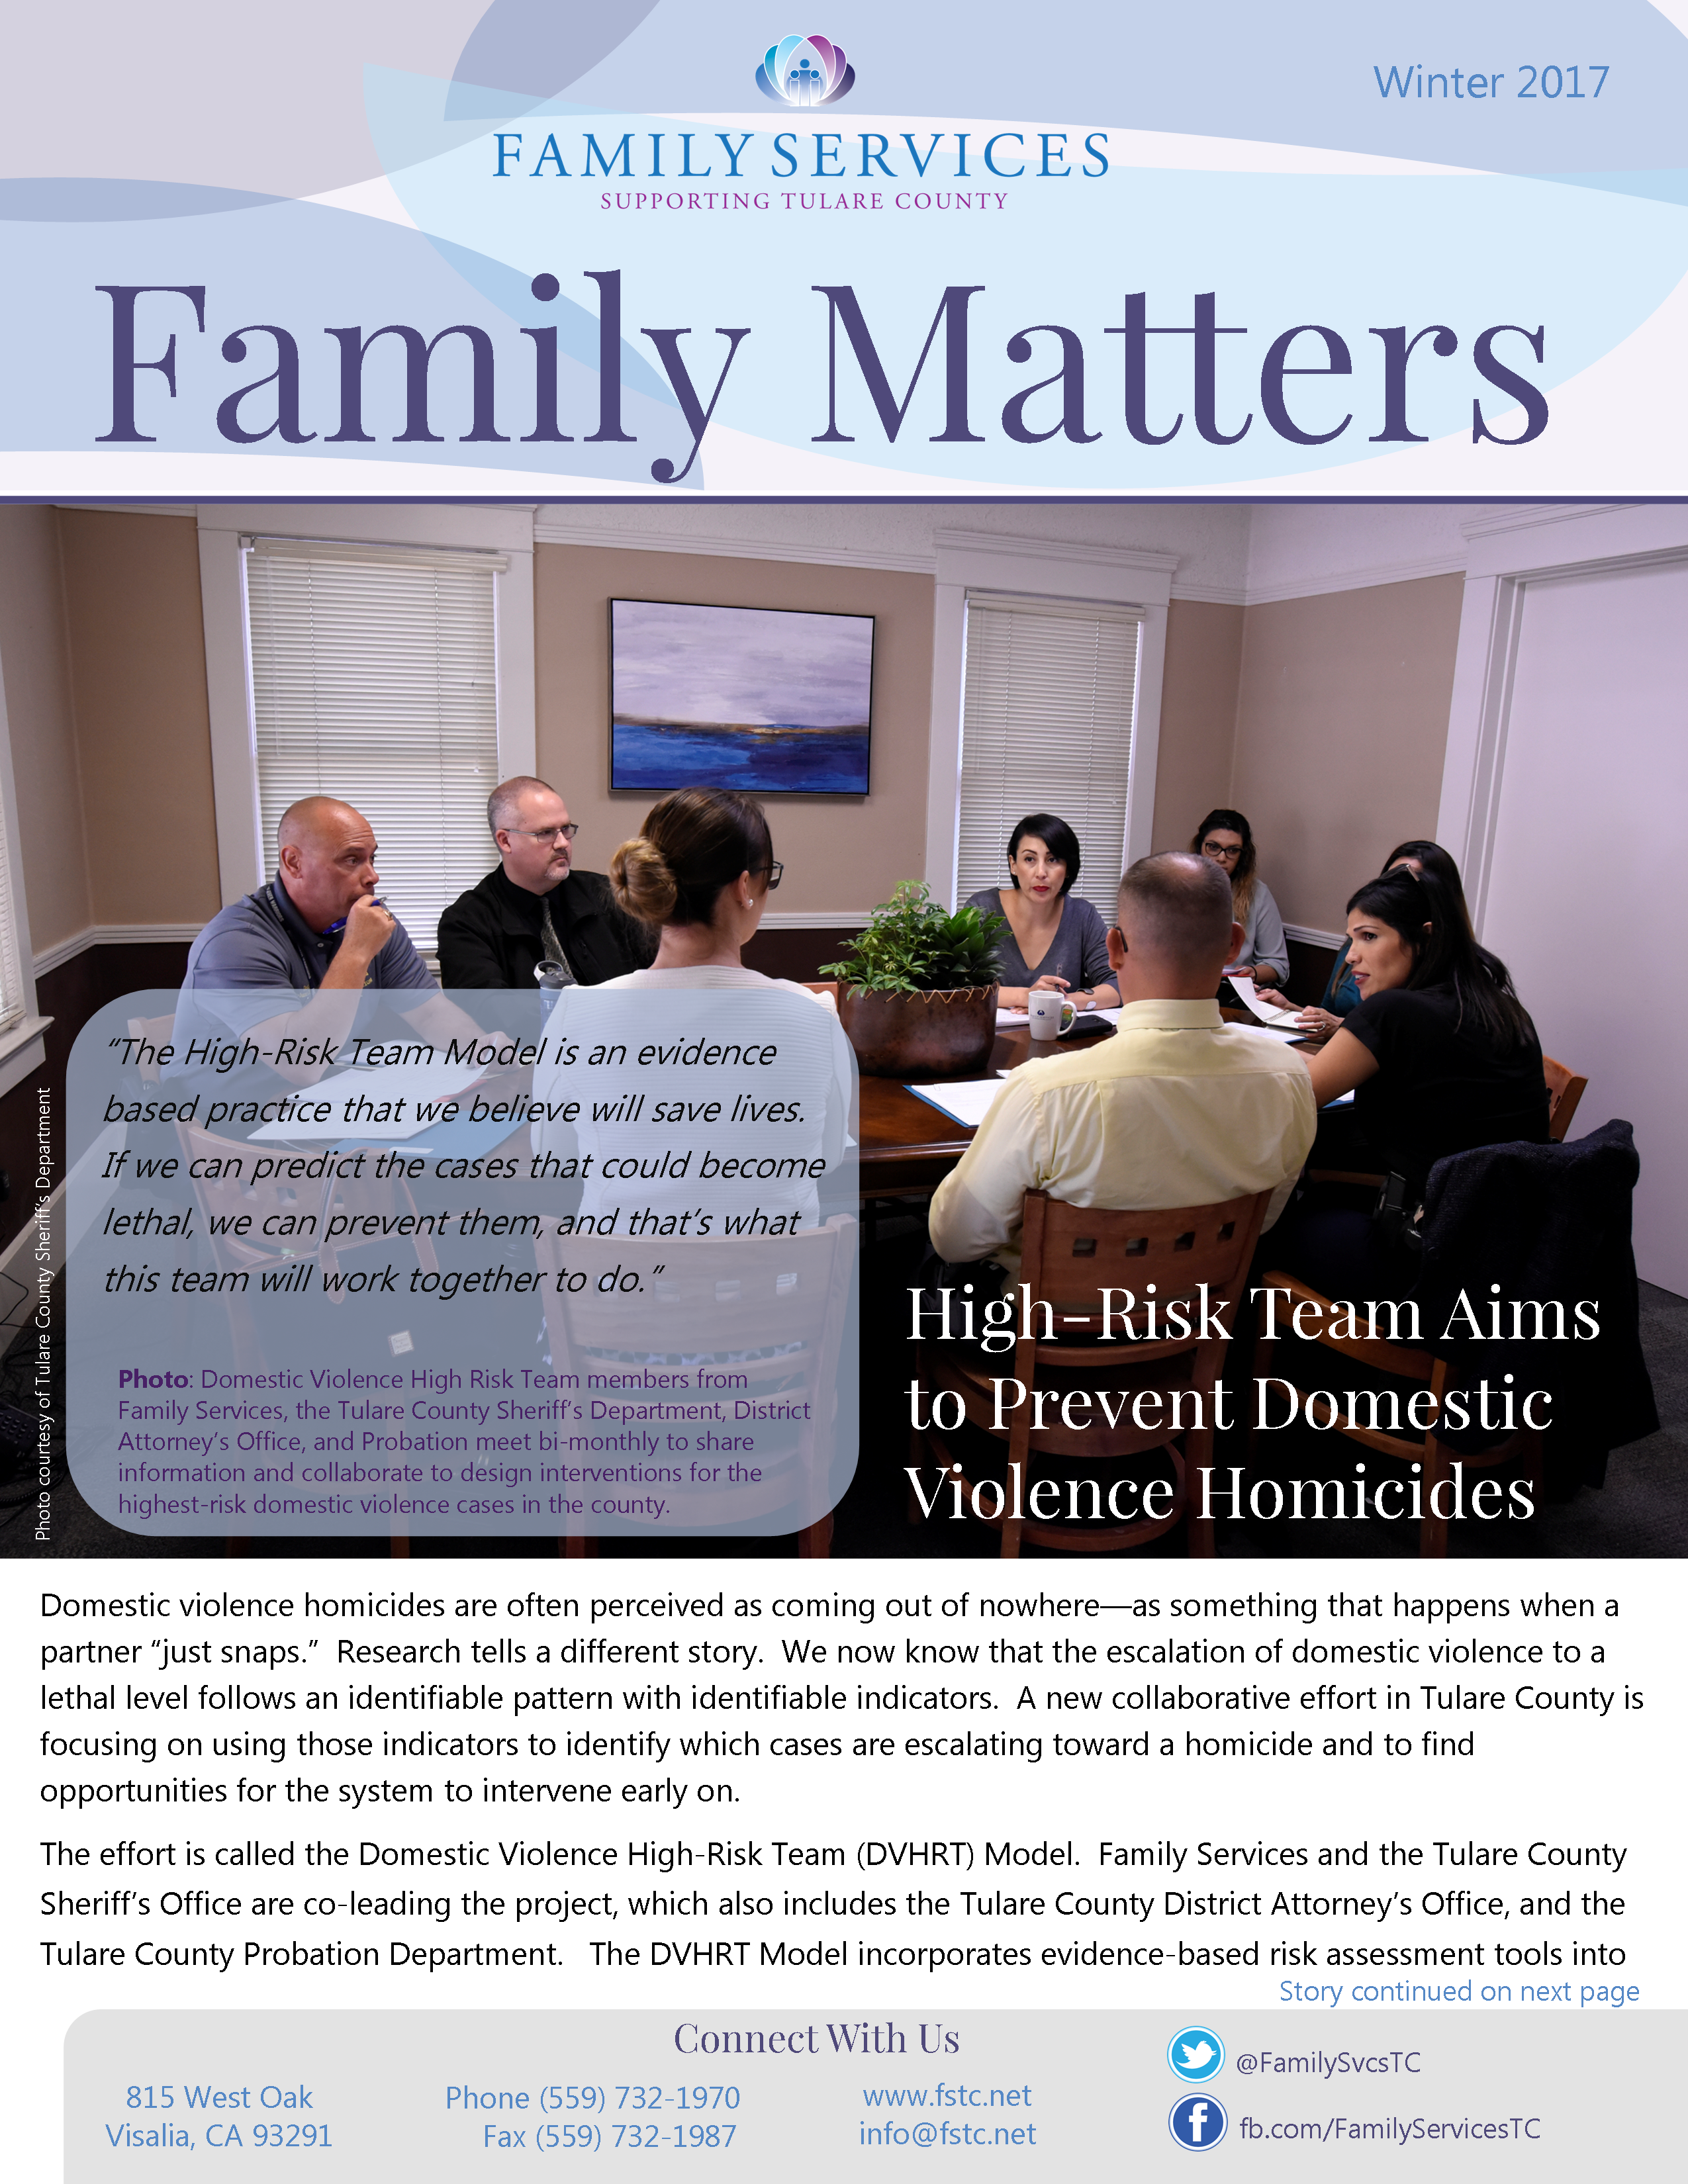 High Risk Team Aims To Prevent Domestic Violence Homicides